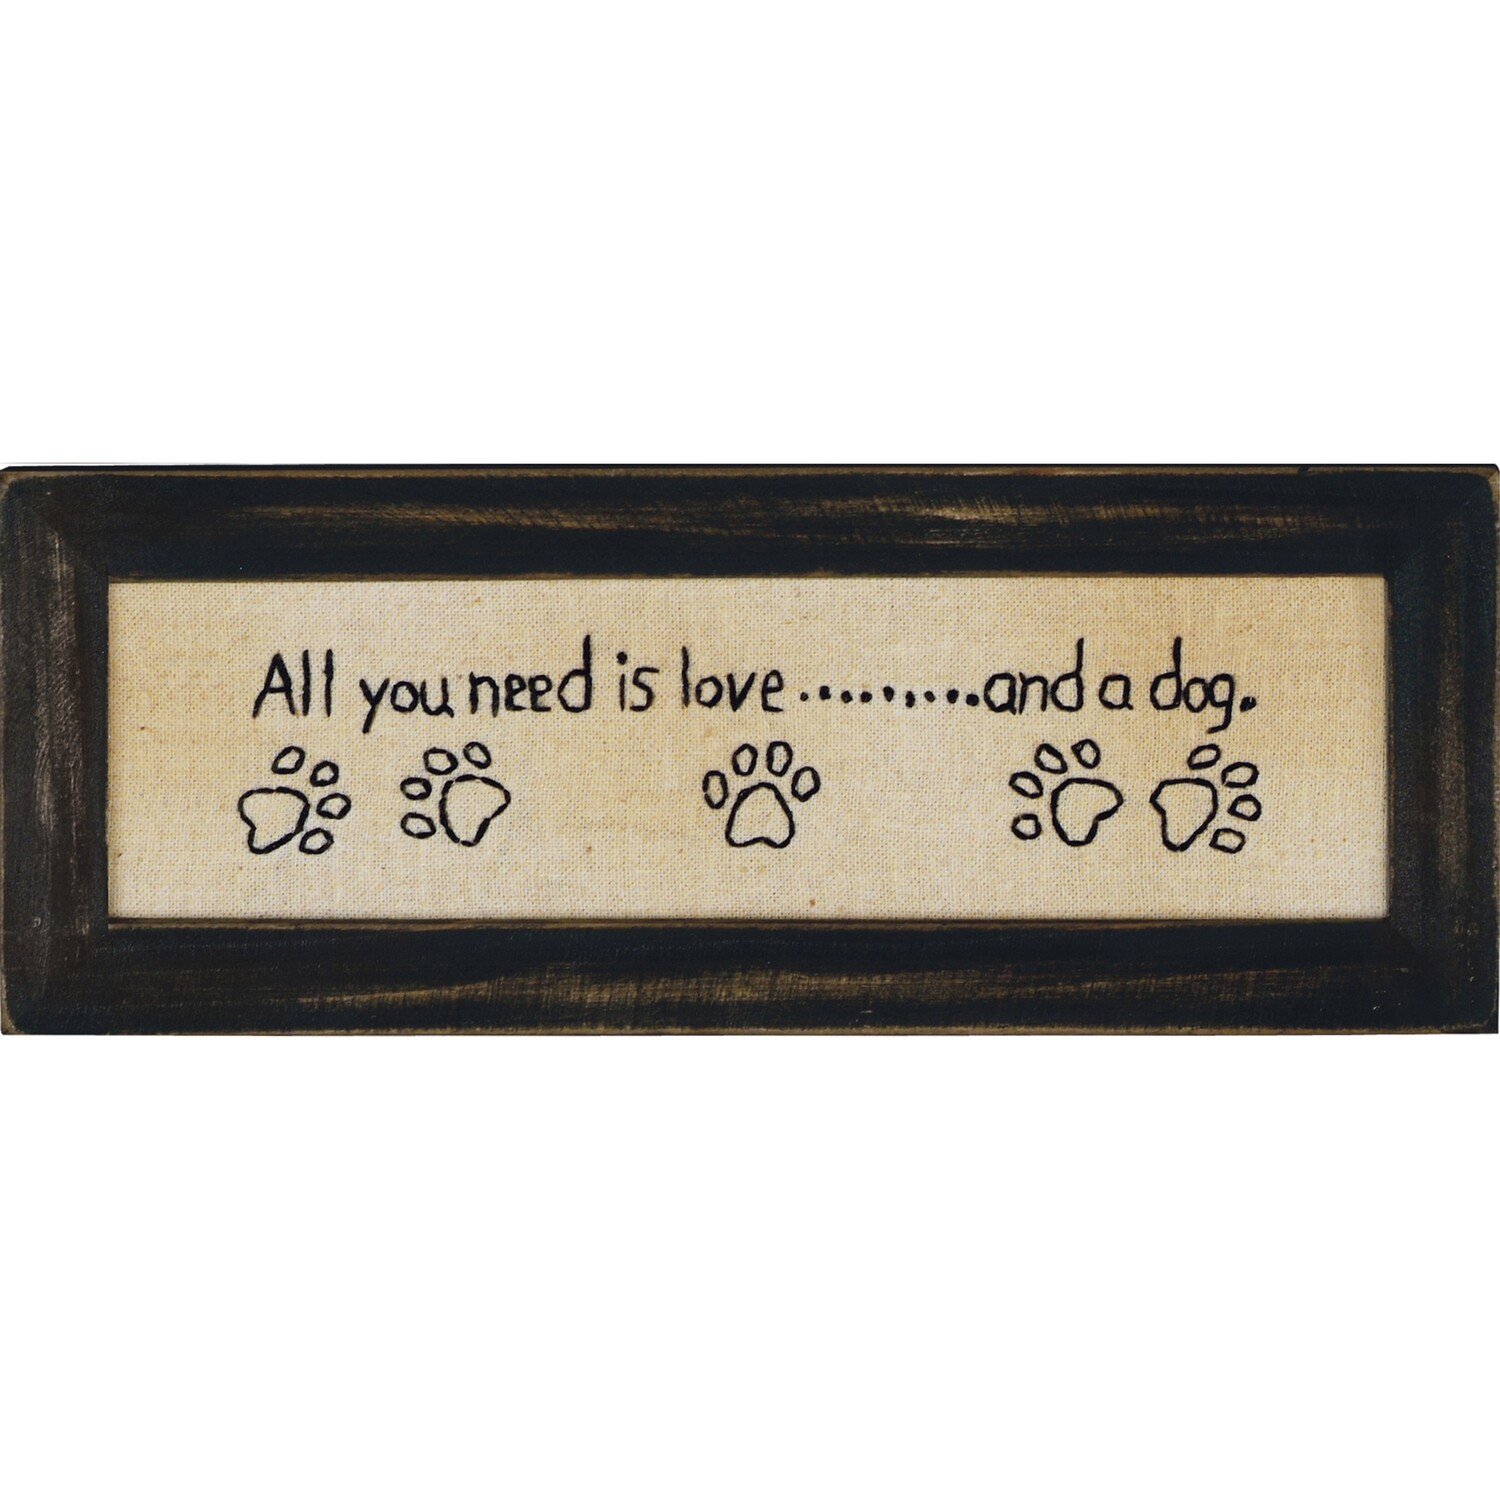 Hand-stitched Canvas in Frame: 'All you need is a dog'